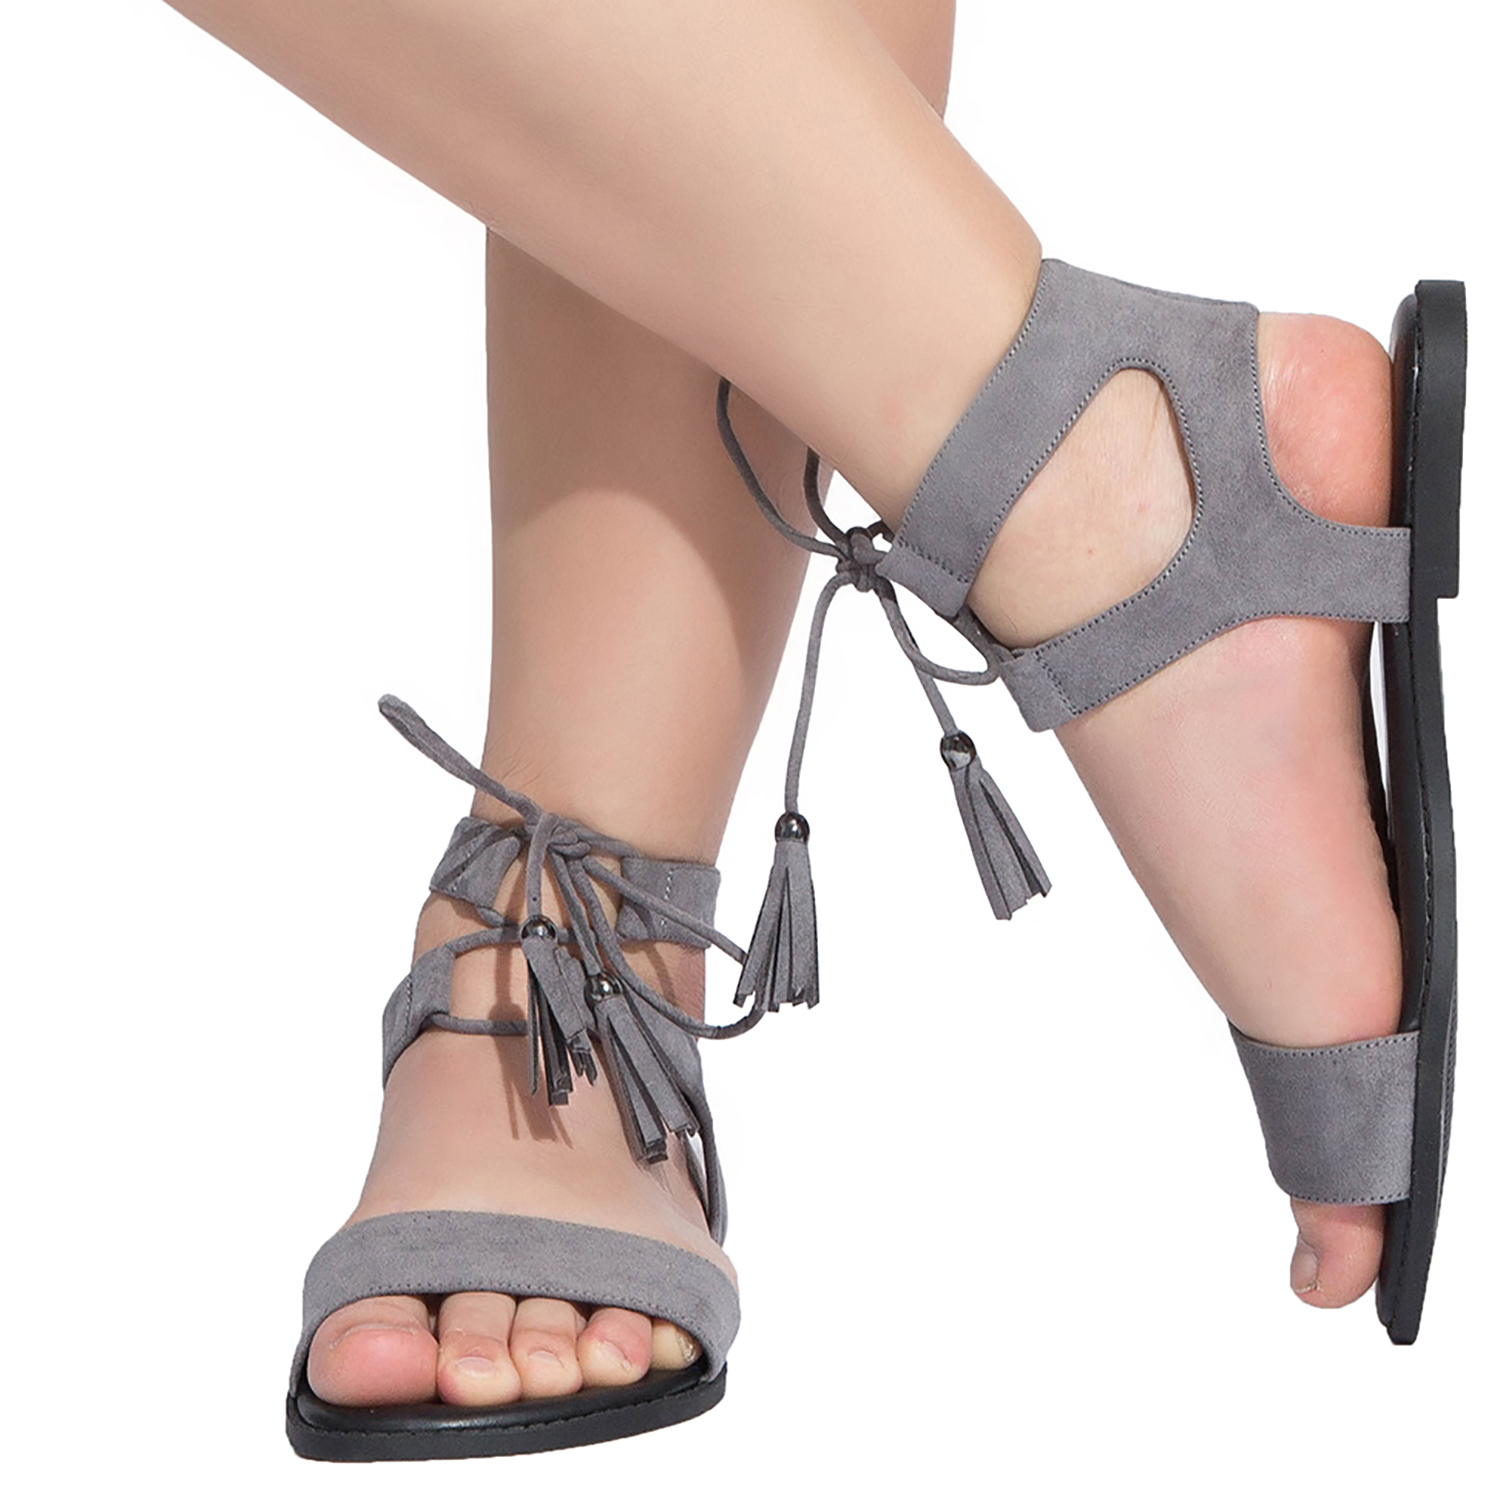 058835cfa964 US  29.99 - Women s Wide Width Flat Sandals - Comfortable Lace up Fringed  Tassel Ankle Strap Suede Dress Shoes. - www.luoika-us.com